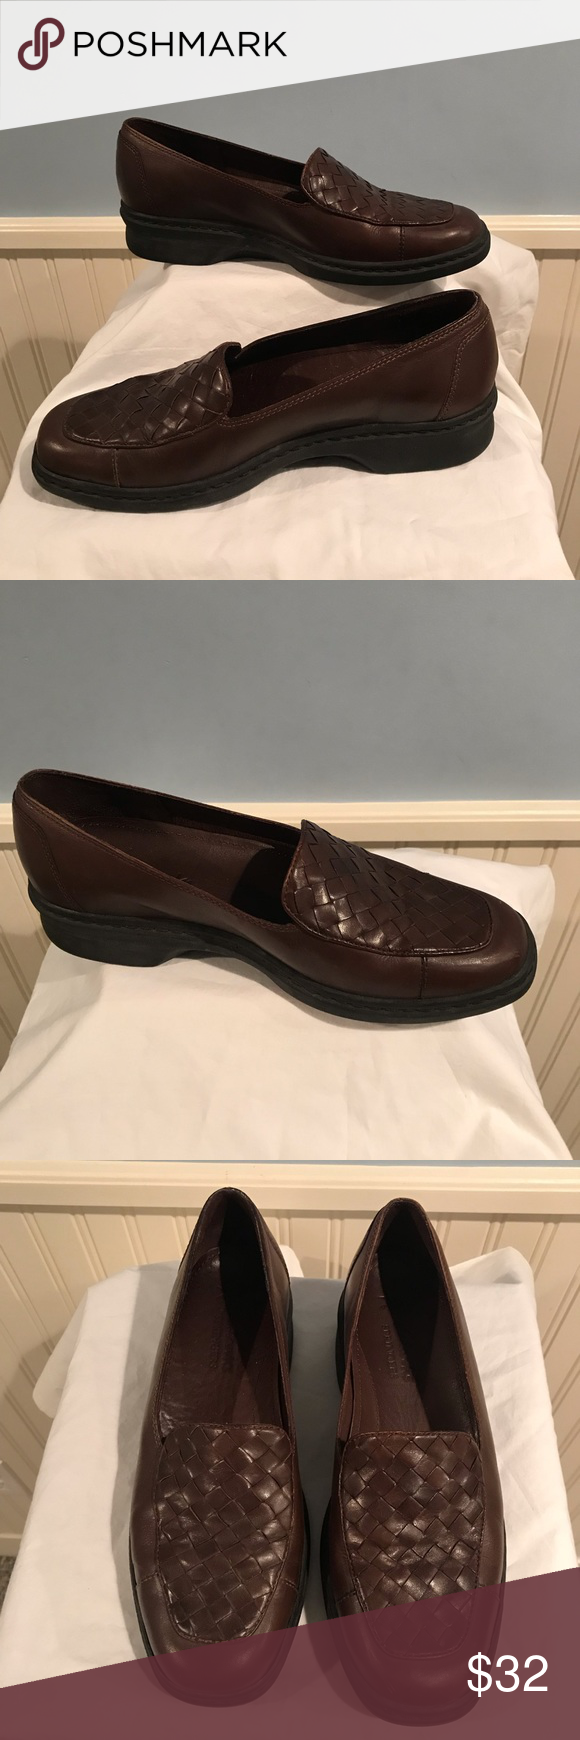 Clarks Springers Brown Woven Loafers